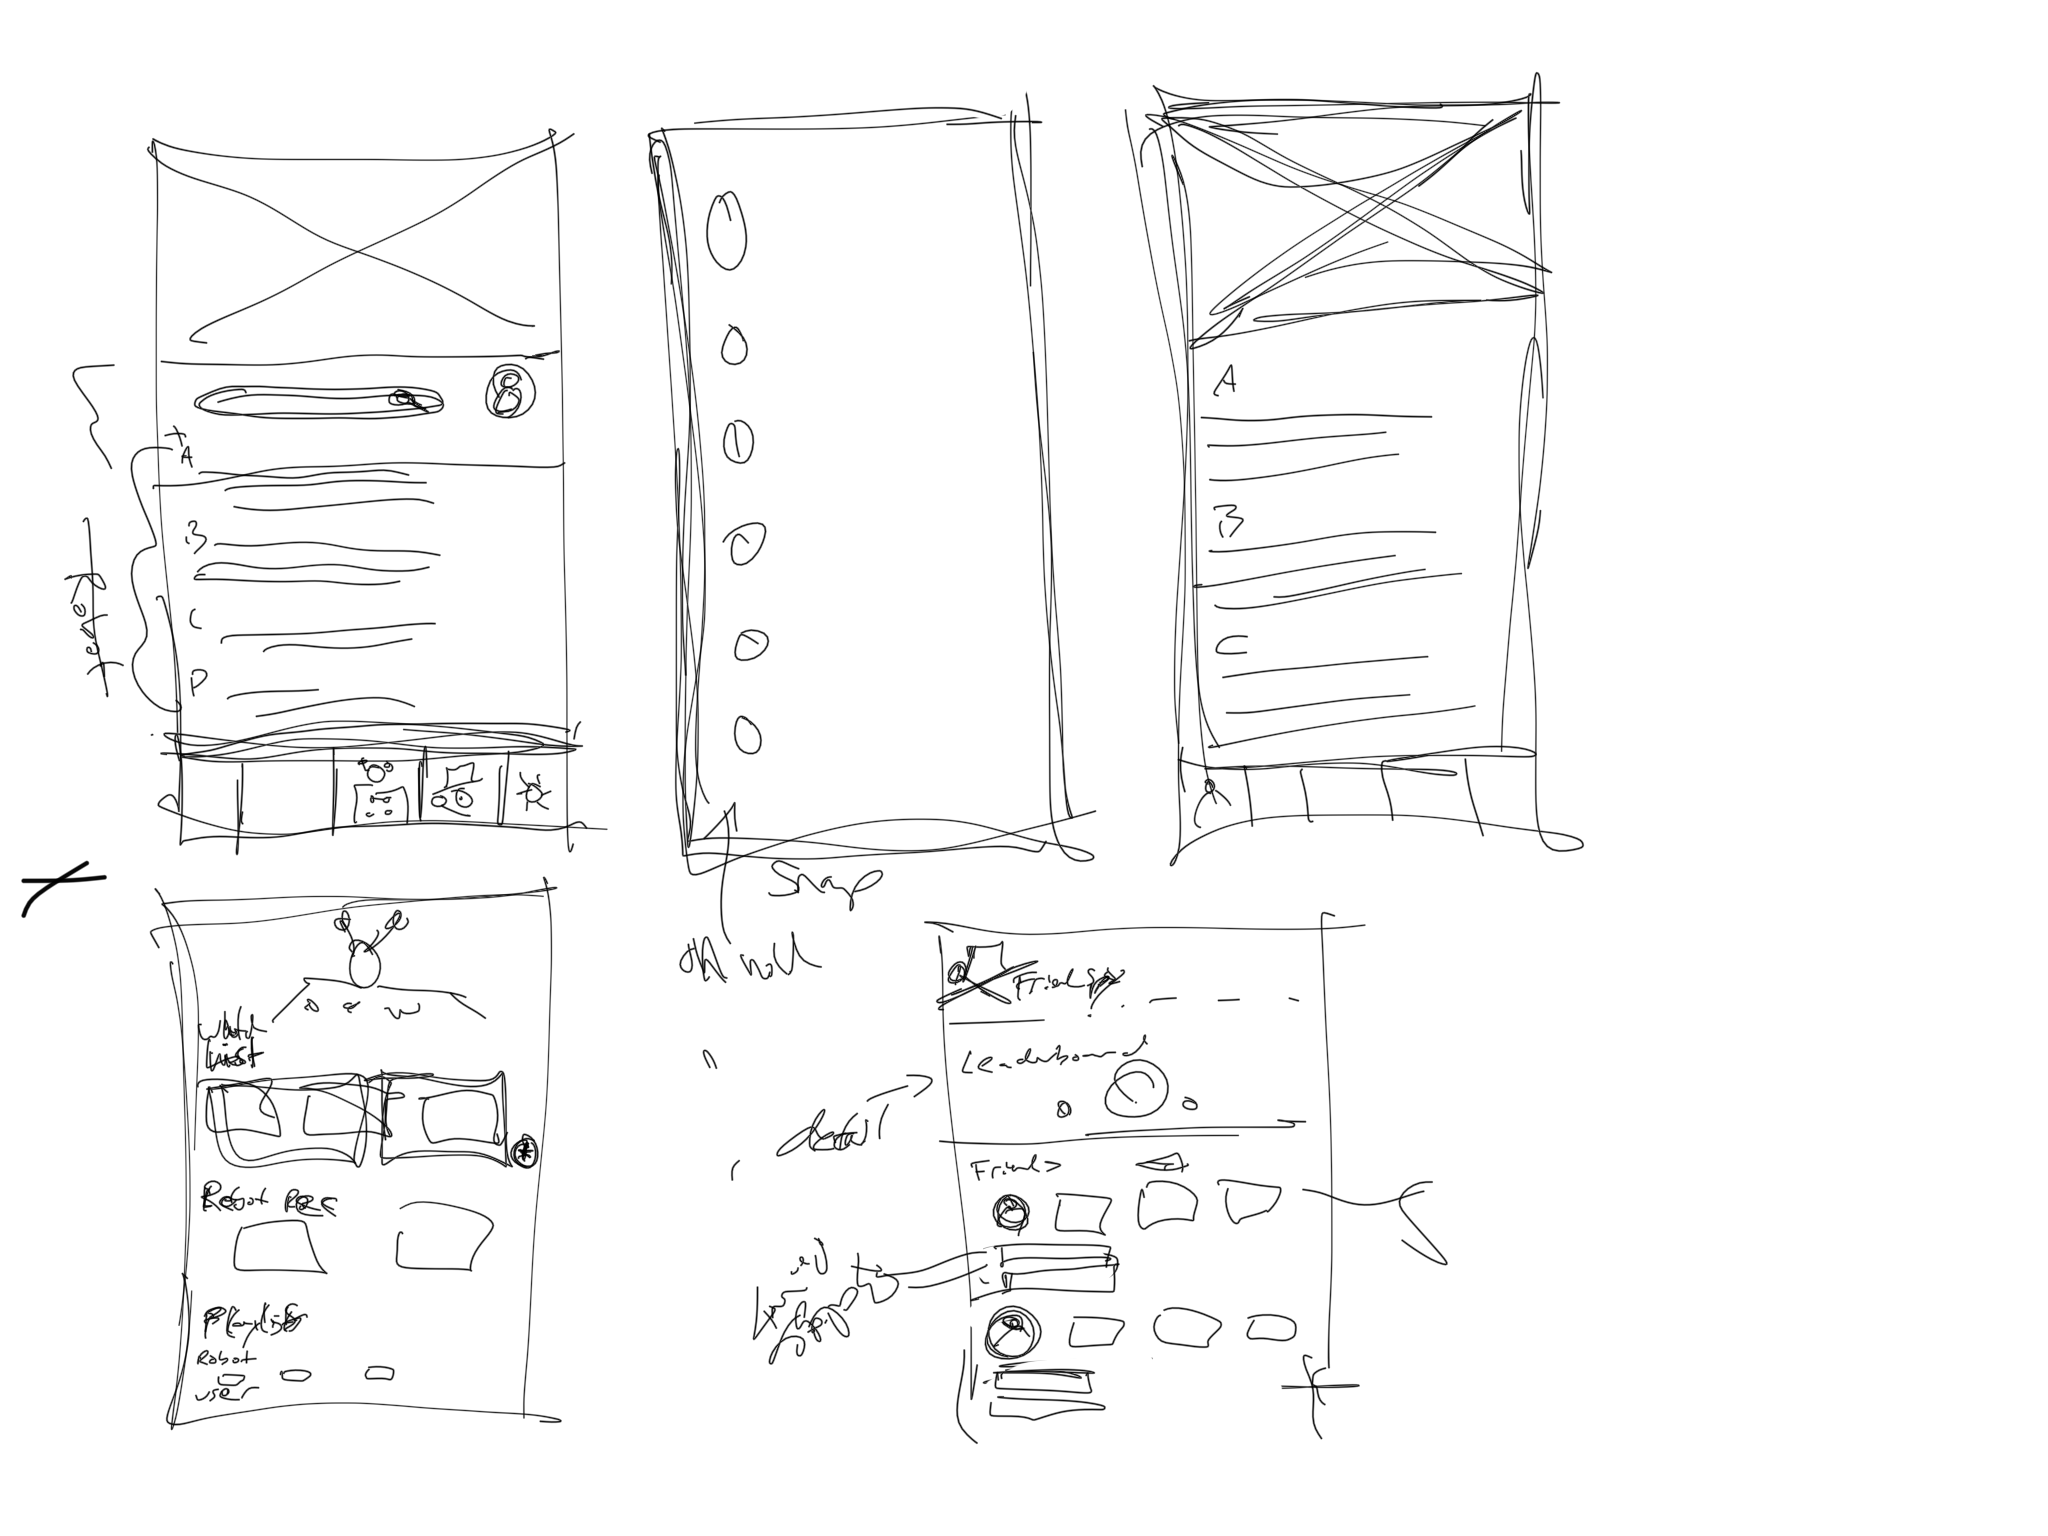 ideation1.png